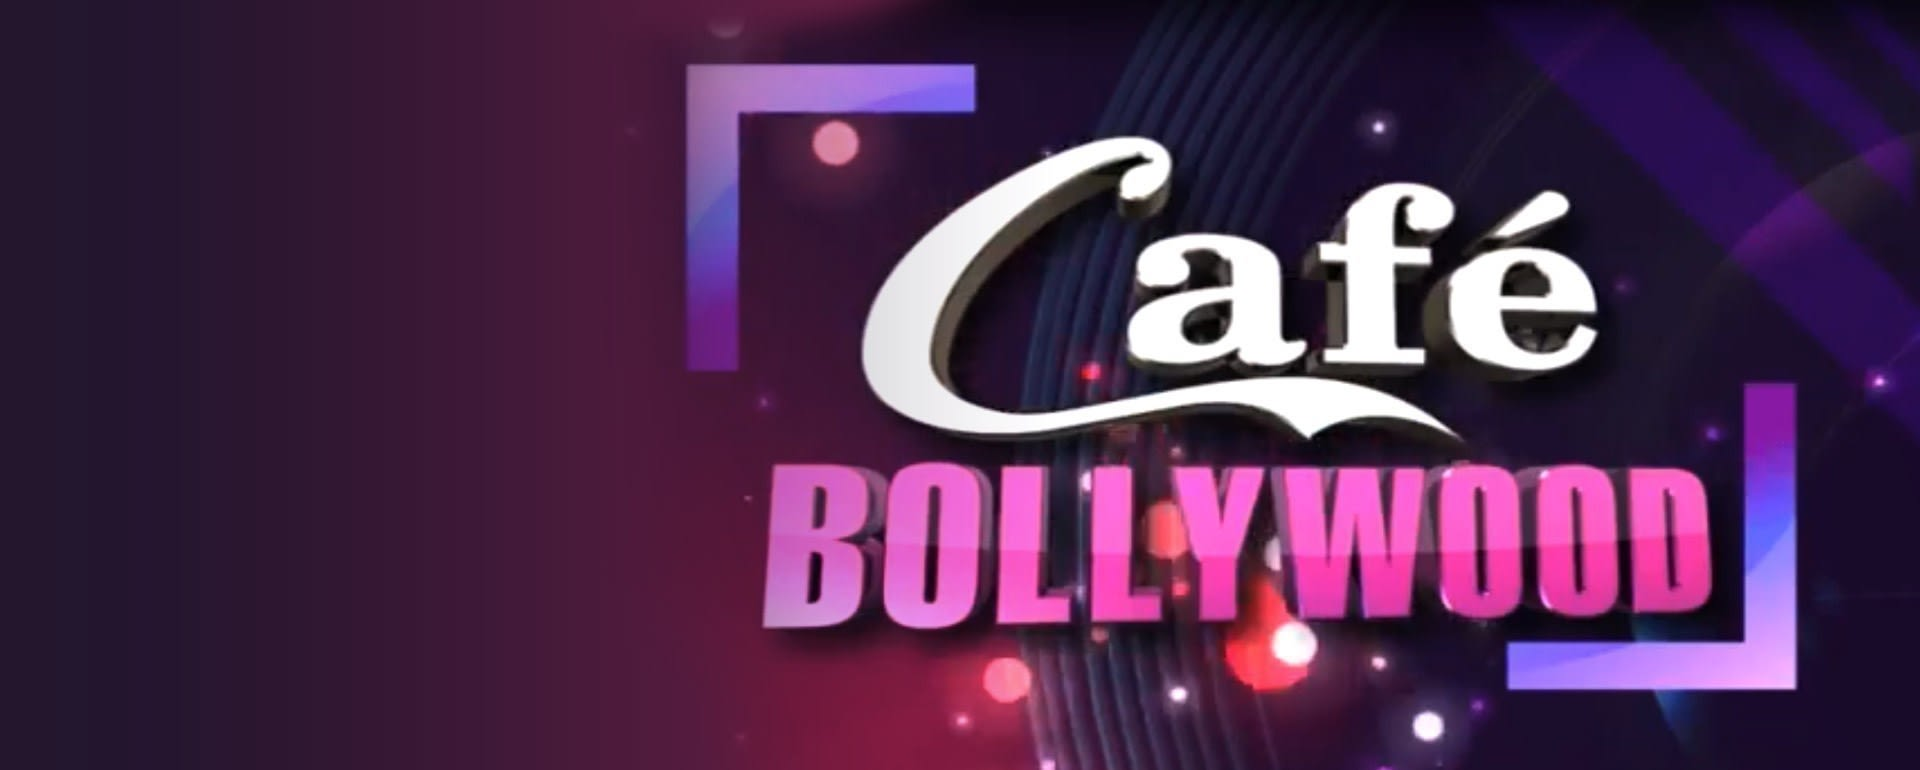 View All Episodes of Café Bollywood (Punjabi) TV Serial from